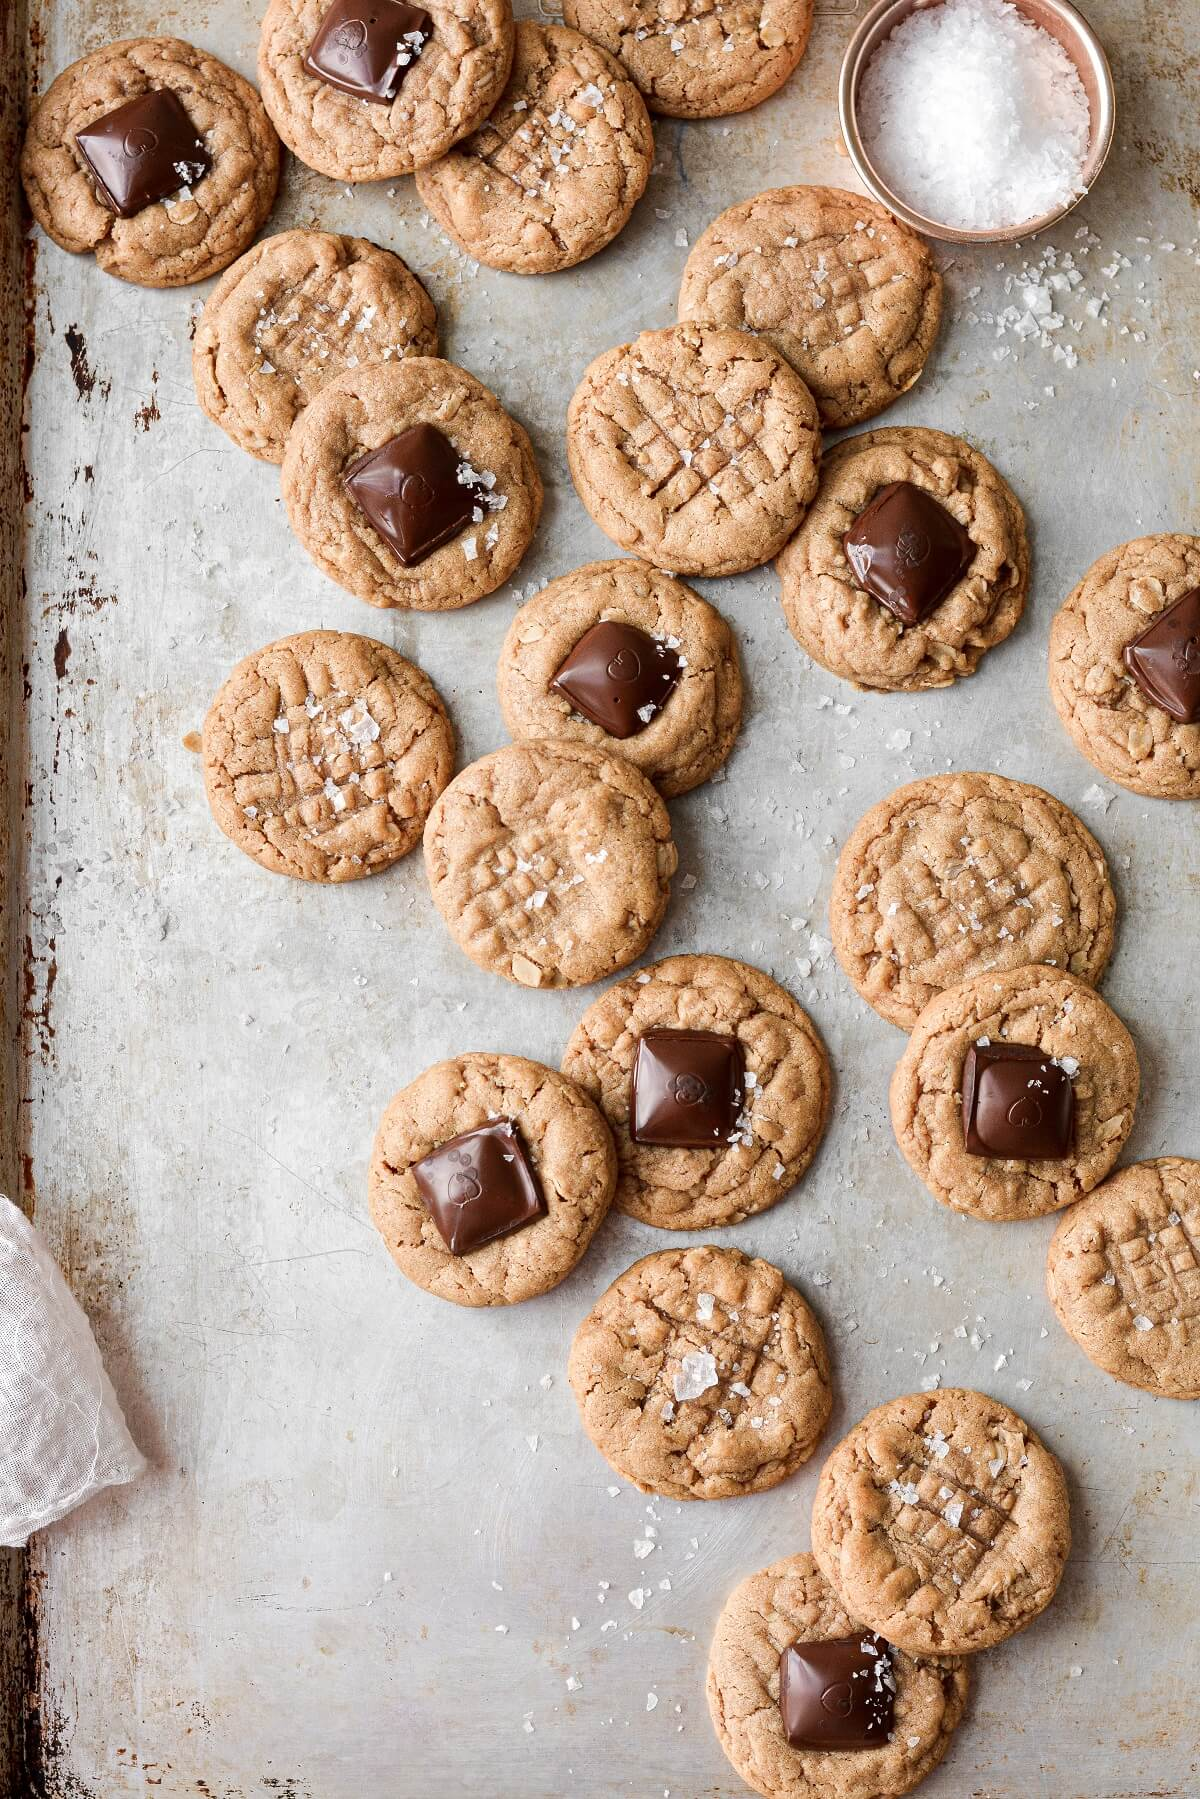 Peanut butter cookies, some topped with squares of chocolate, sprinkled with flaky salt.